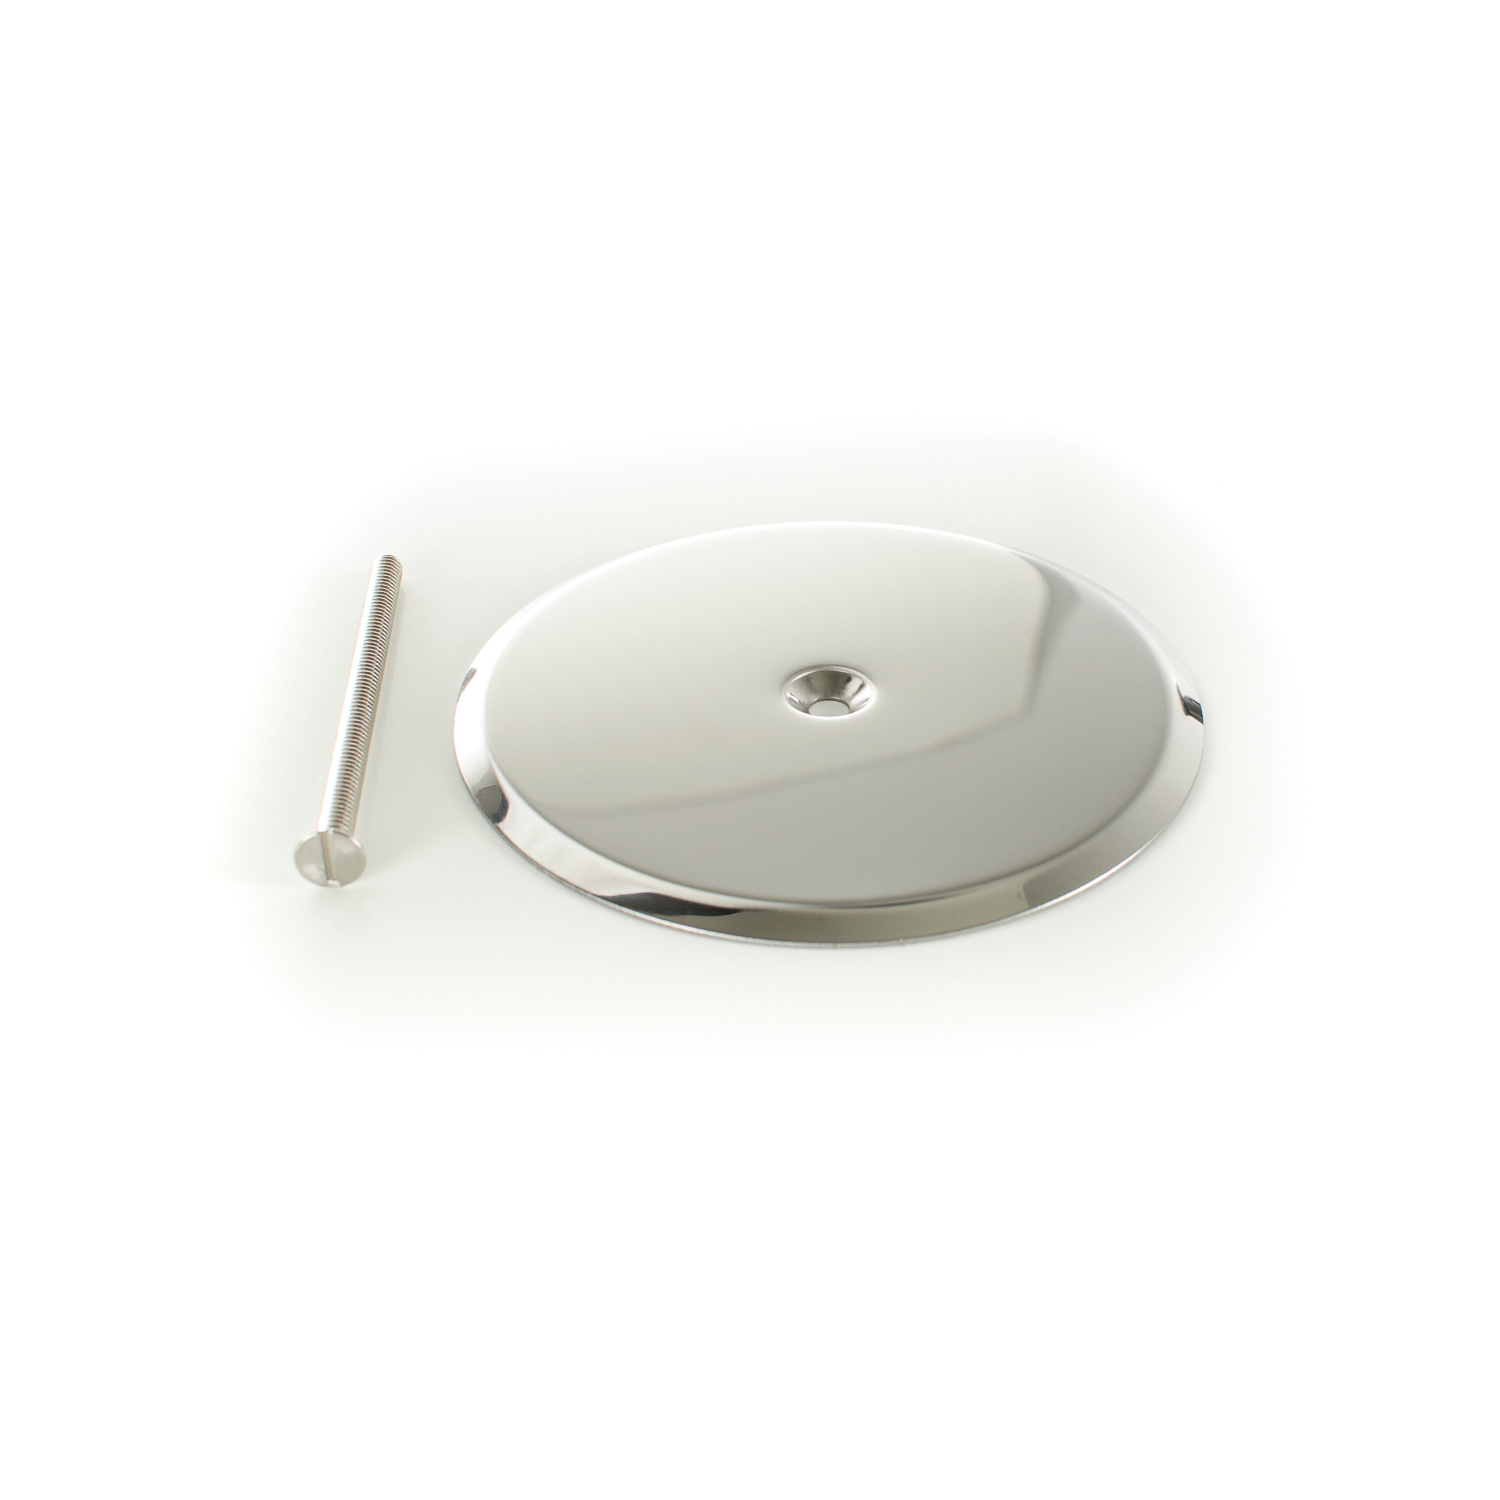 PASCO 1842 Cleanout Cover Plate With 1/4-20 x 4 in Bolt, 5 in Cover, 22 ga Stainless Steel